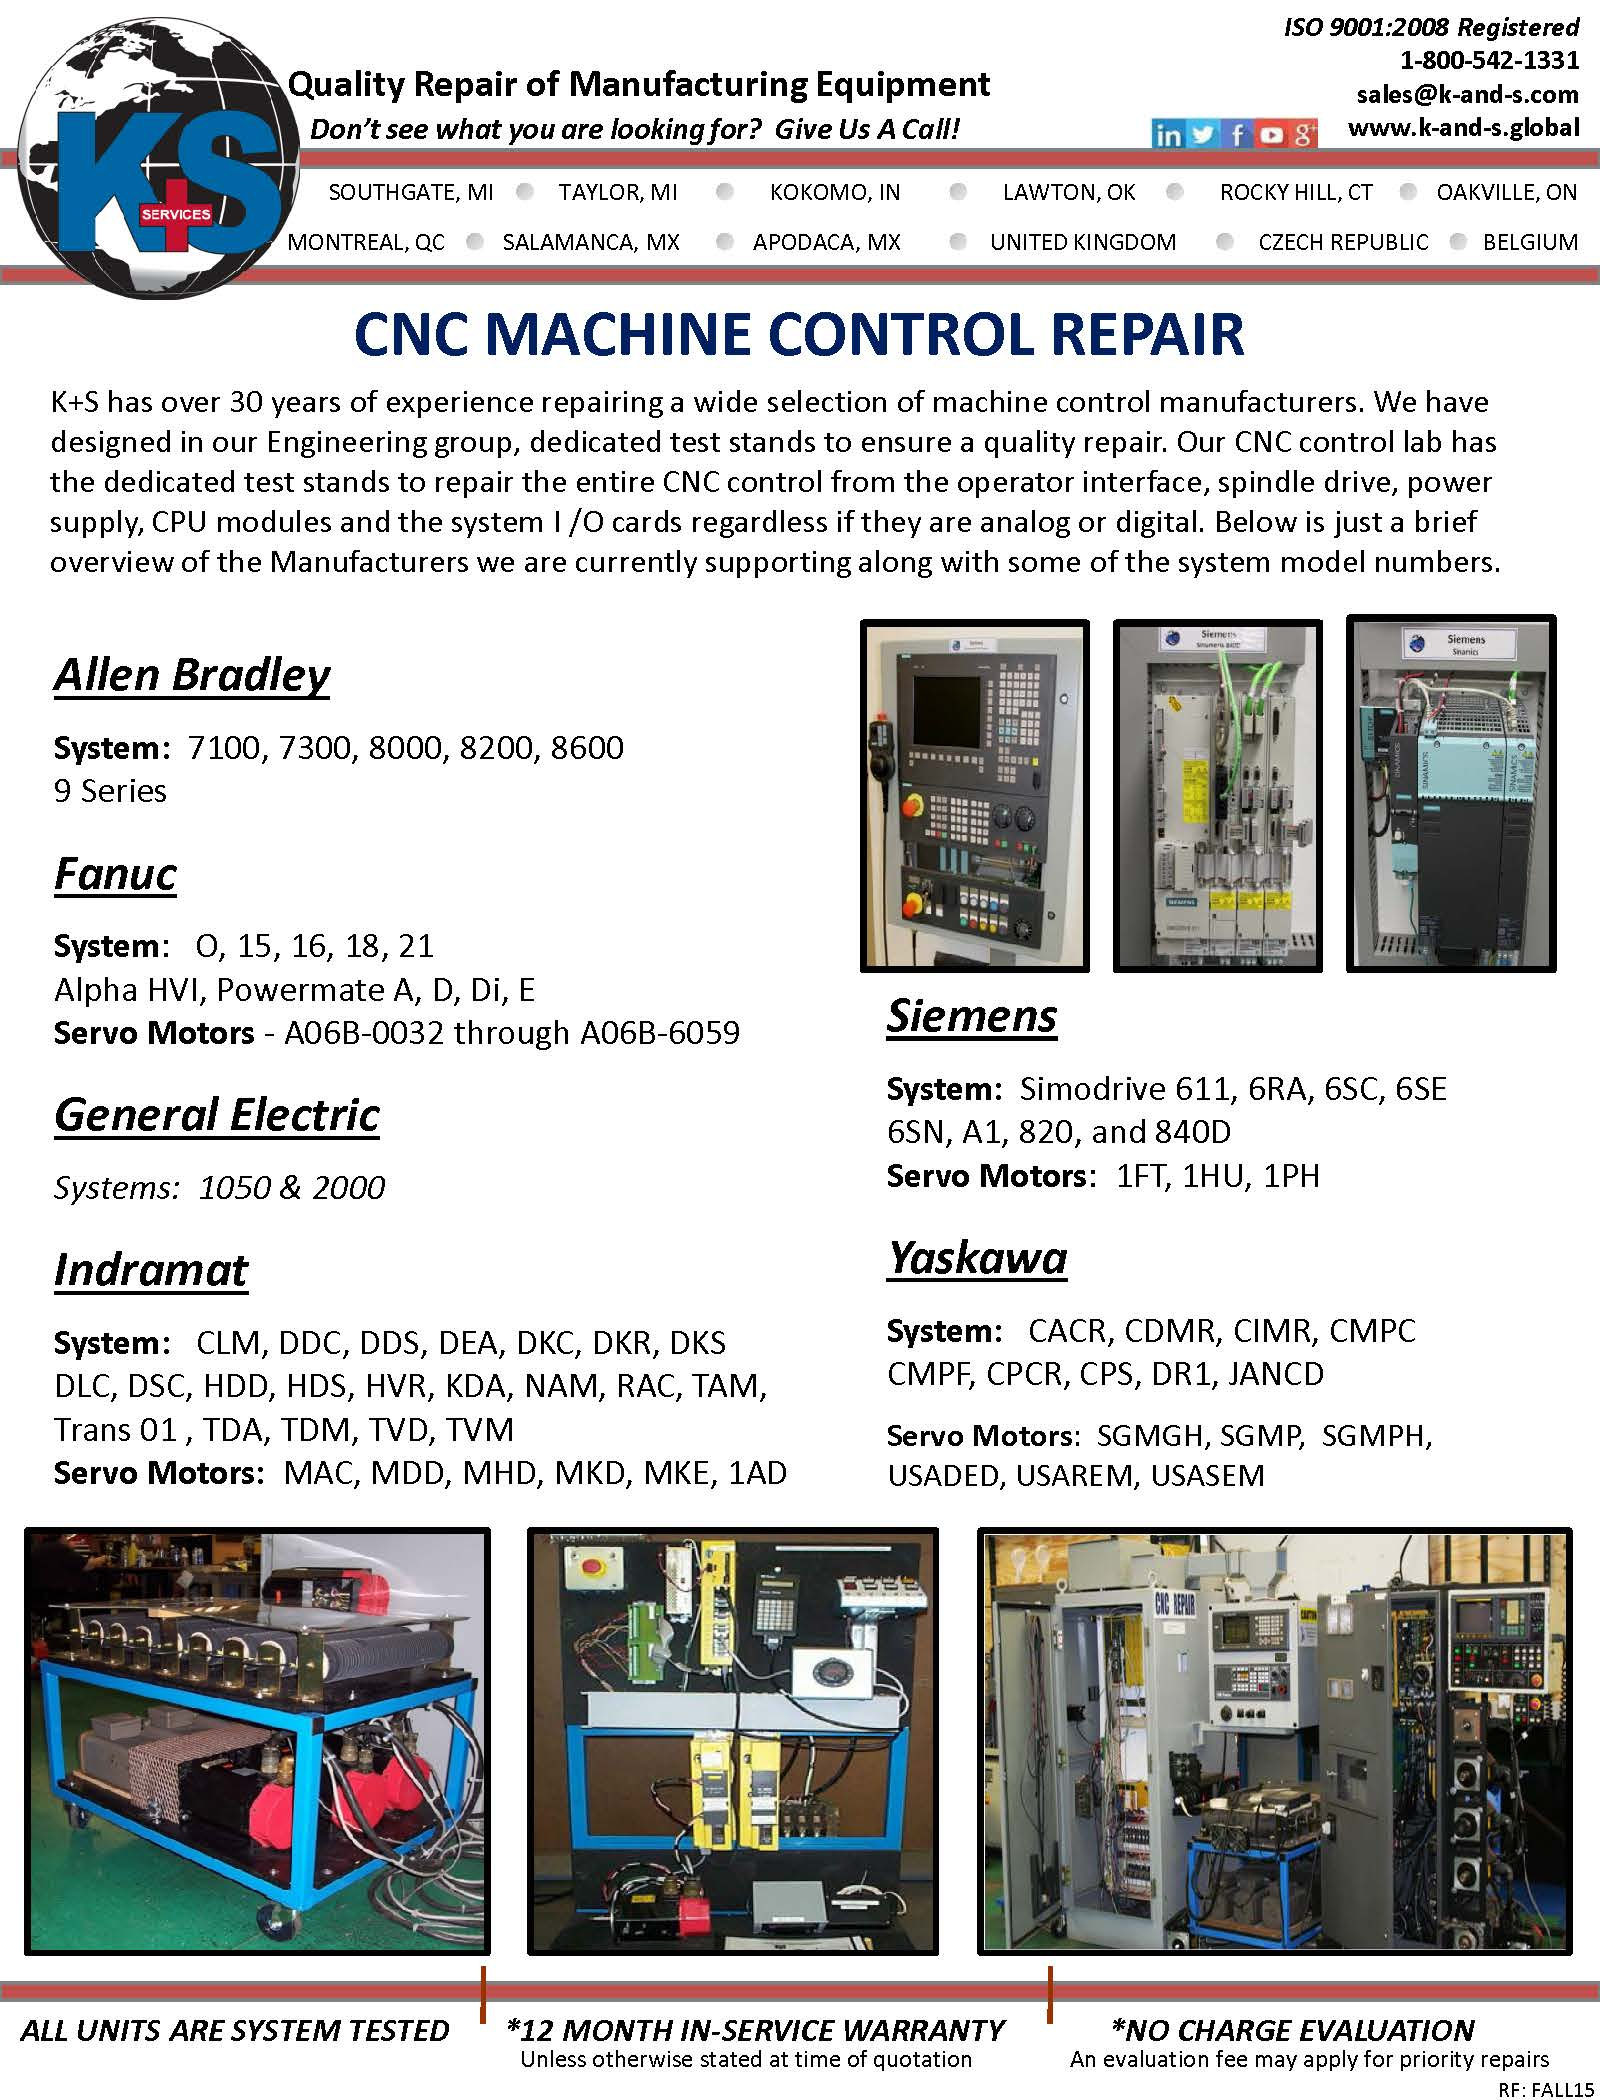 K S Services Inc Southgate Michigan Mi 48195 At Electronics Repair Center We Specialize In Industrial Cnc Machine Control